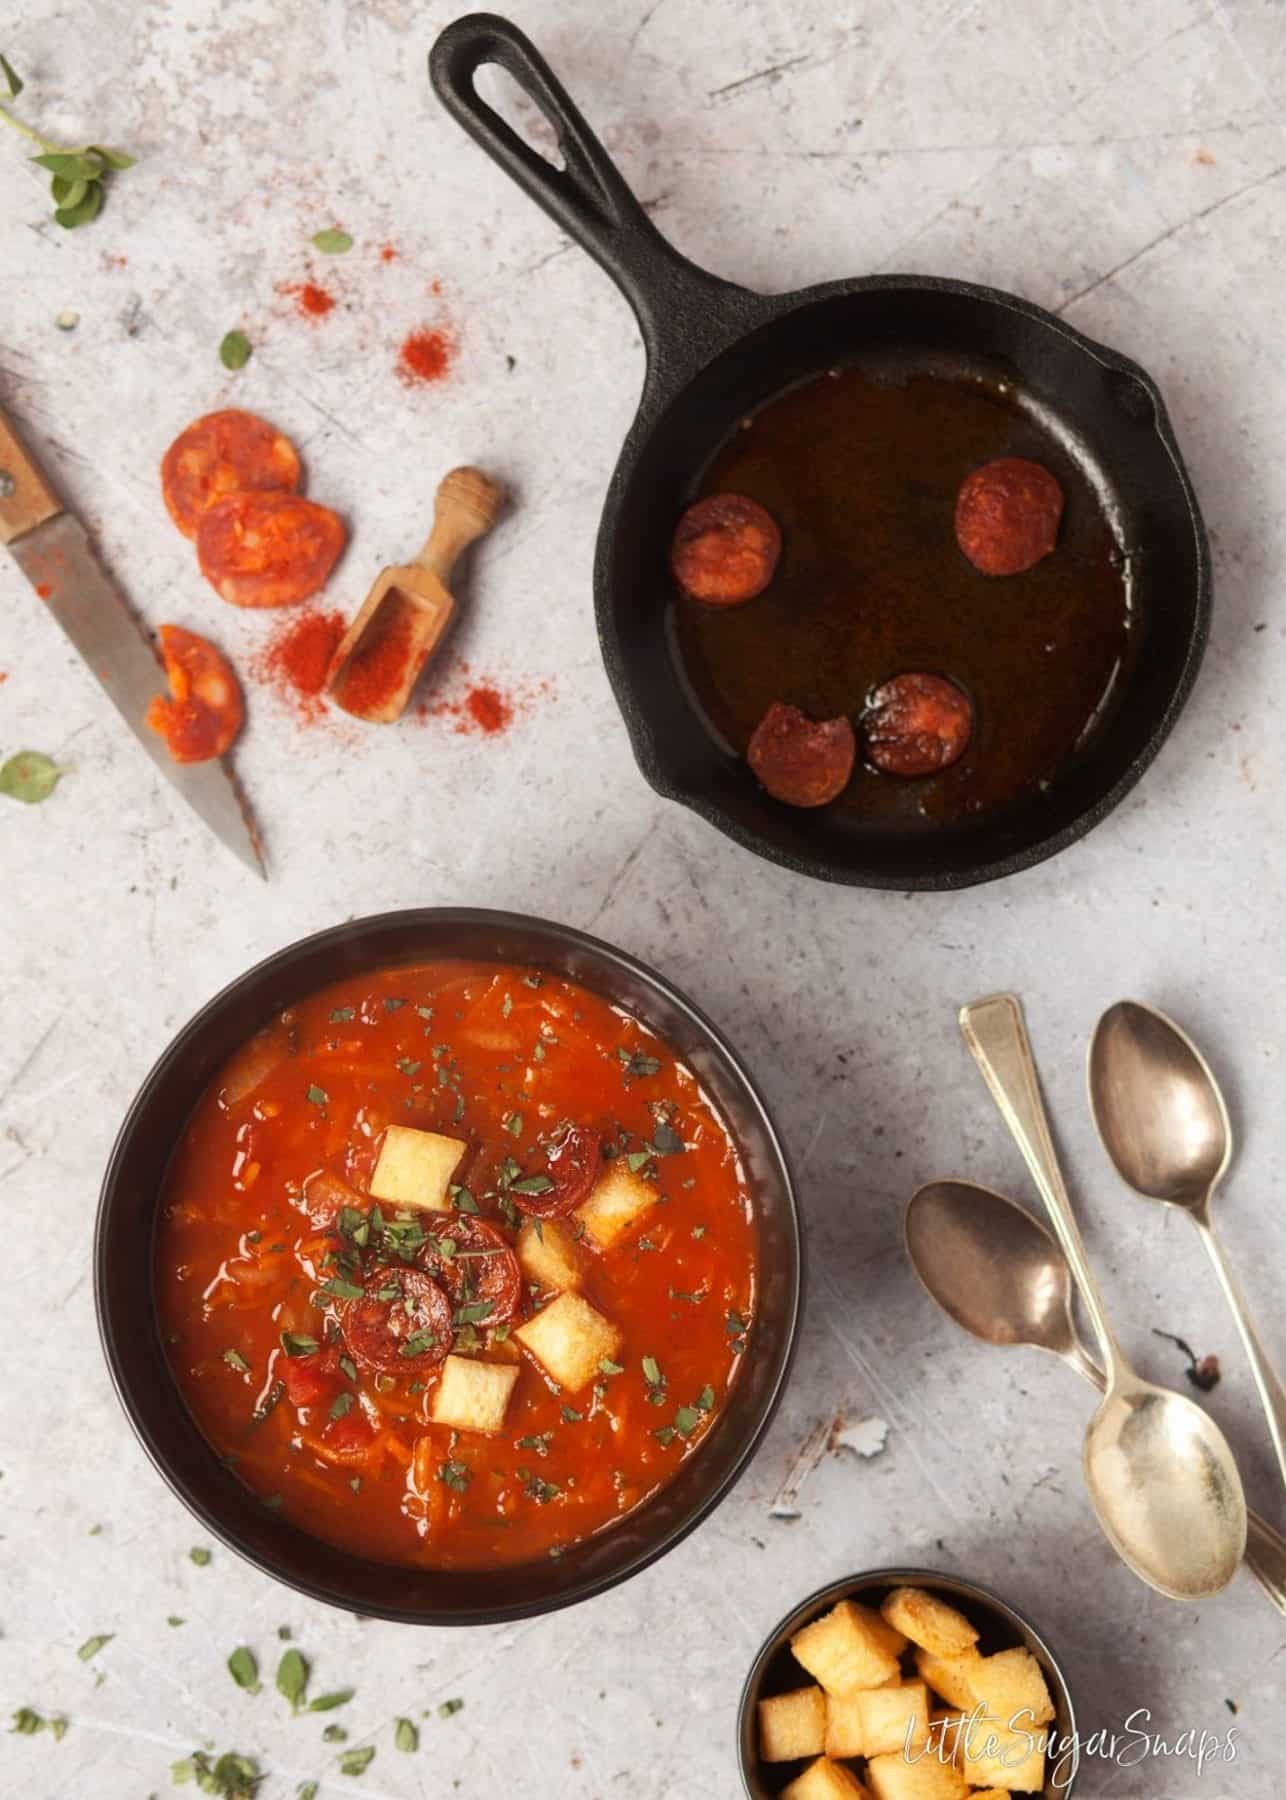 Hearty Paprika Soup with Carrot and Zucchini garnished with fried chorizo slices